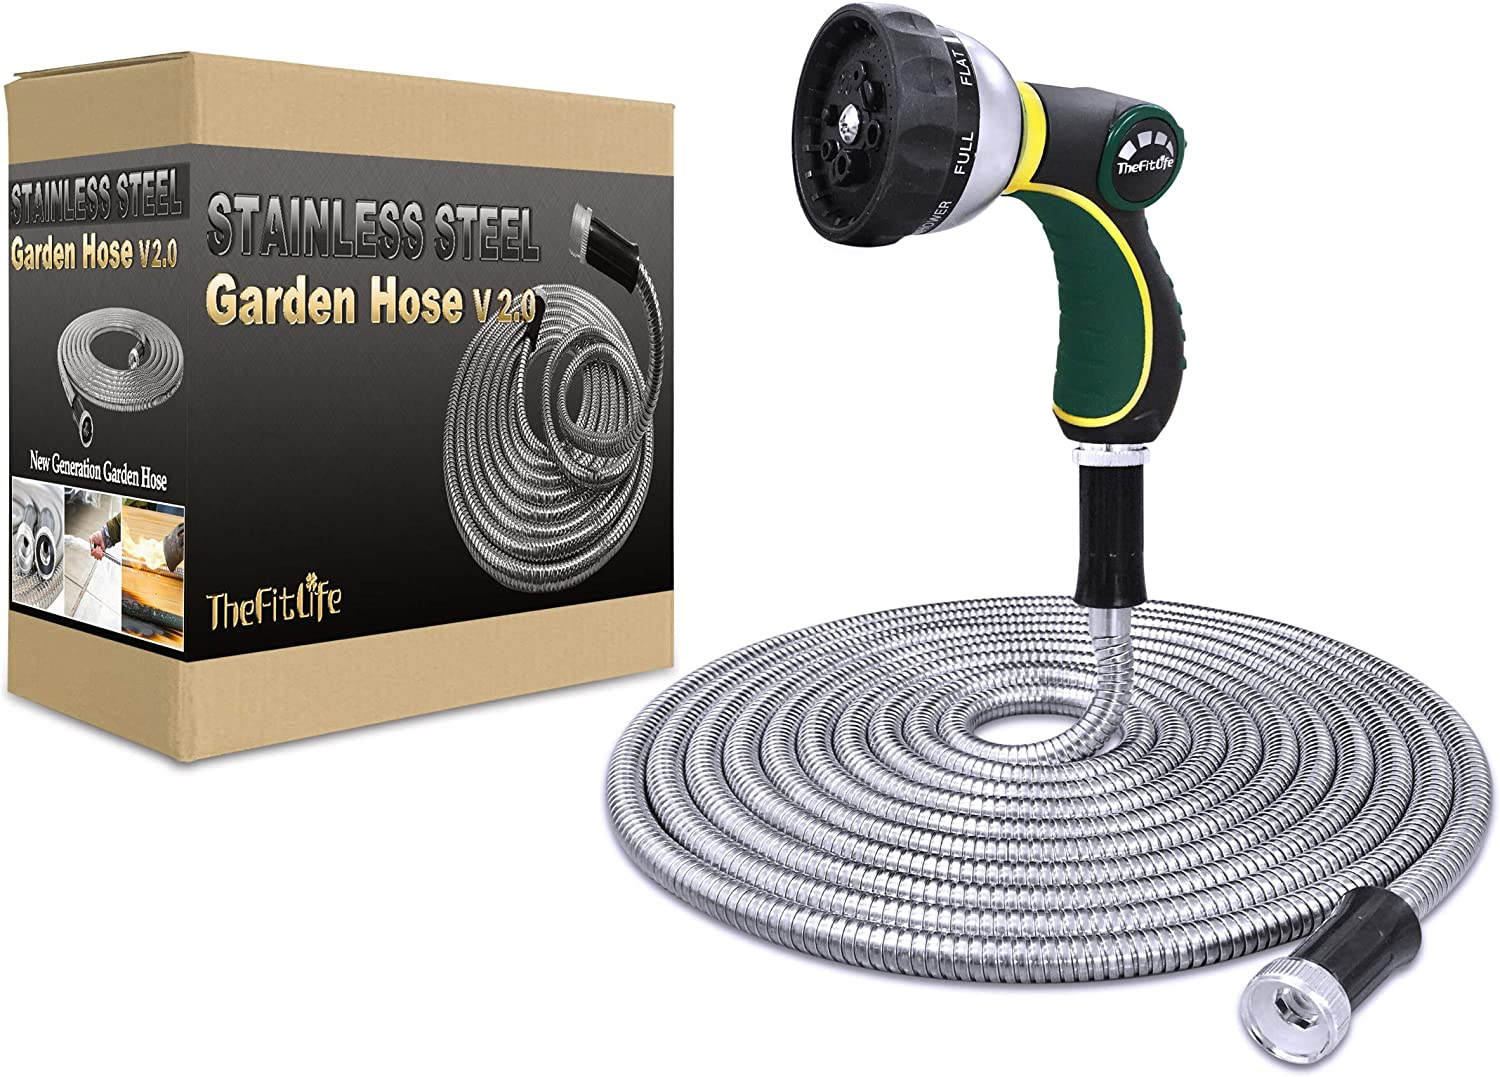 TheFitLife Flexible Metal Garden Hose - 25/50/75/100 FT 304 Stainless Steel Water Hose with Newest Spray Nozzle and Solid Metal Fittings, Lightweight, Kink Free, Durable and Easy to Store (75 Feet)